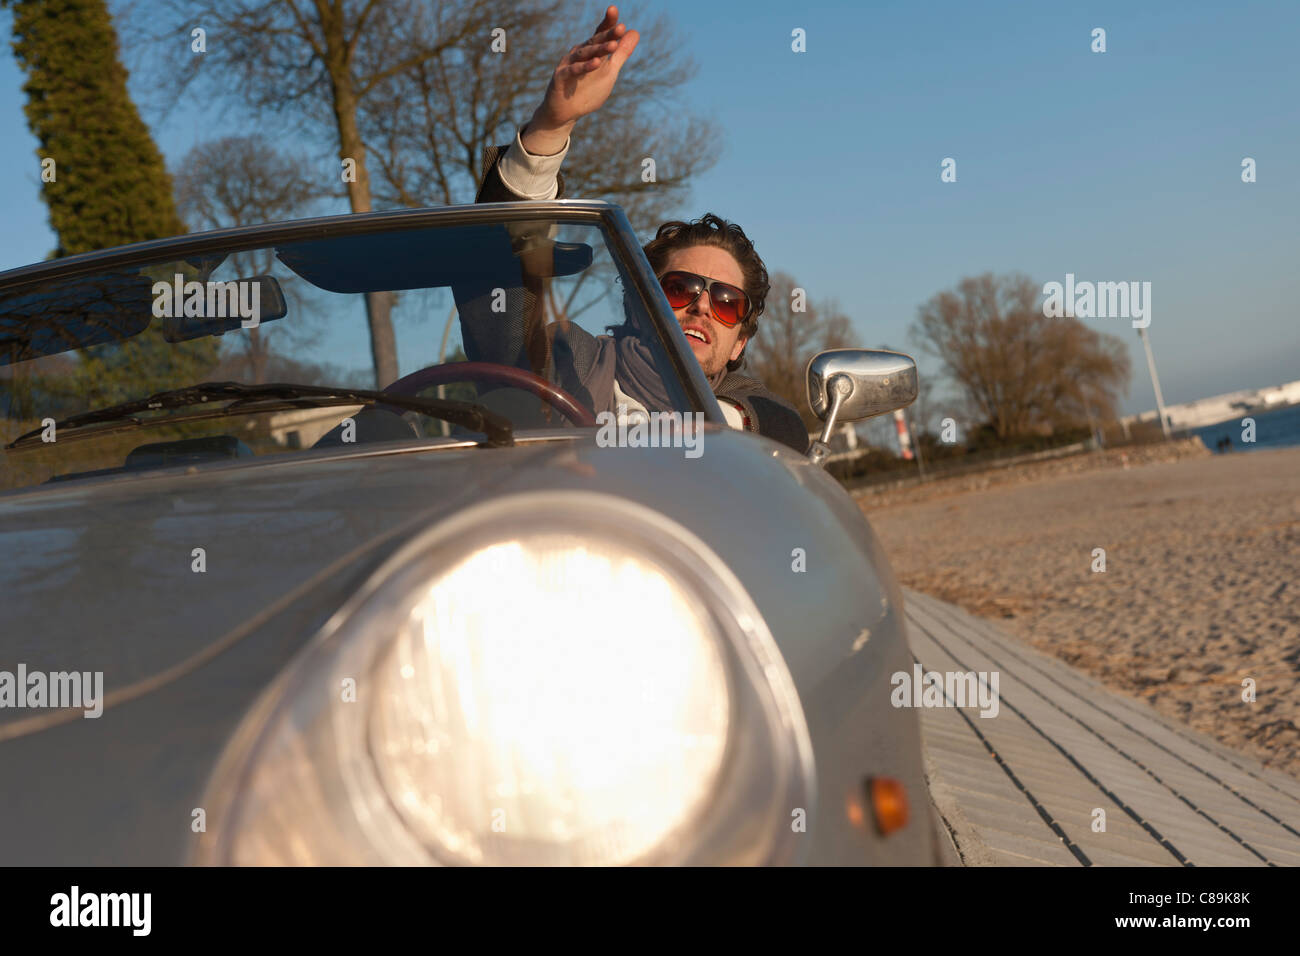 Germany, Hamburg, Man driving classic cabriolet car - Stock Image